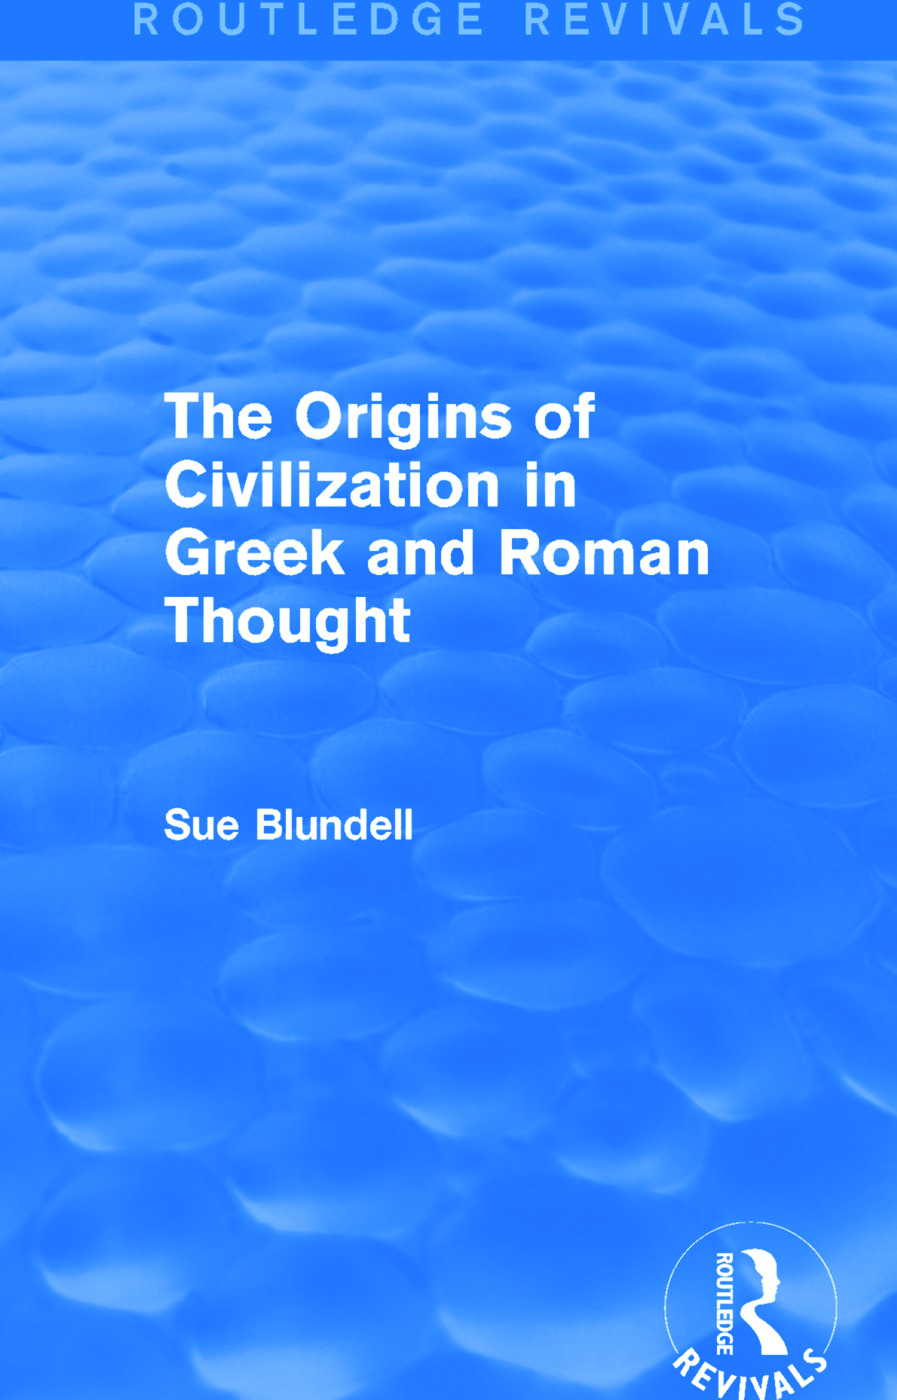 The Origins of Civilization in Greek and Roman Thought (Routledge Revivals) (Hardback) book cover